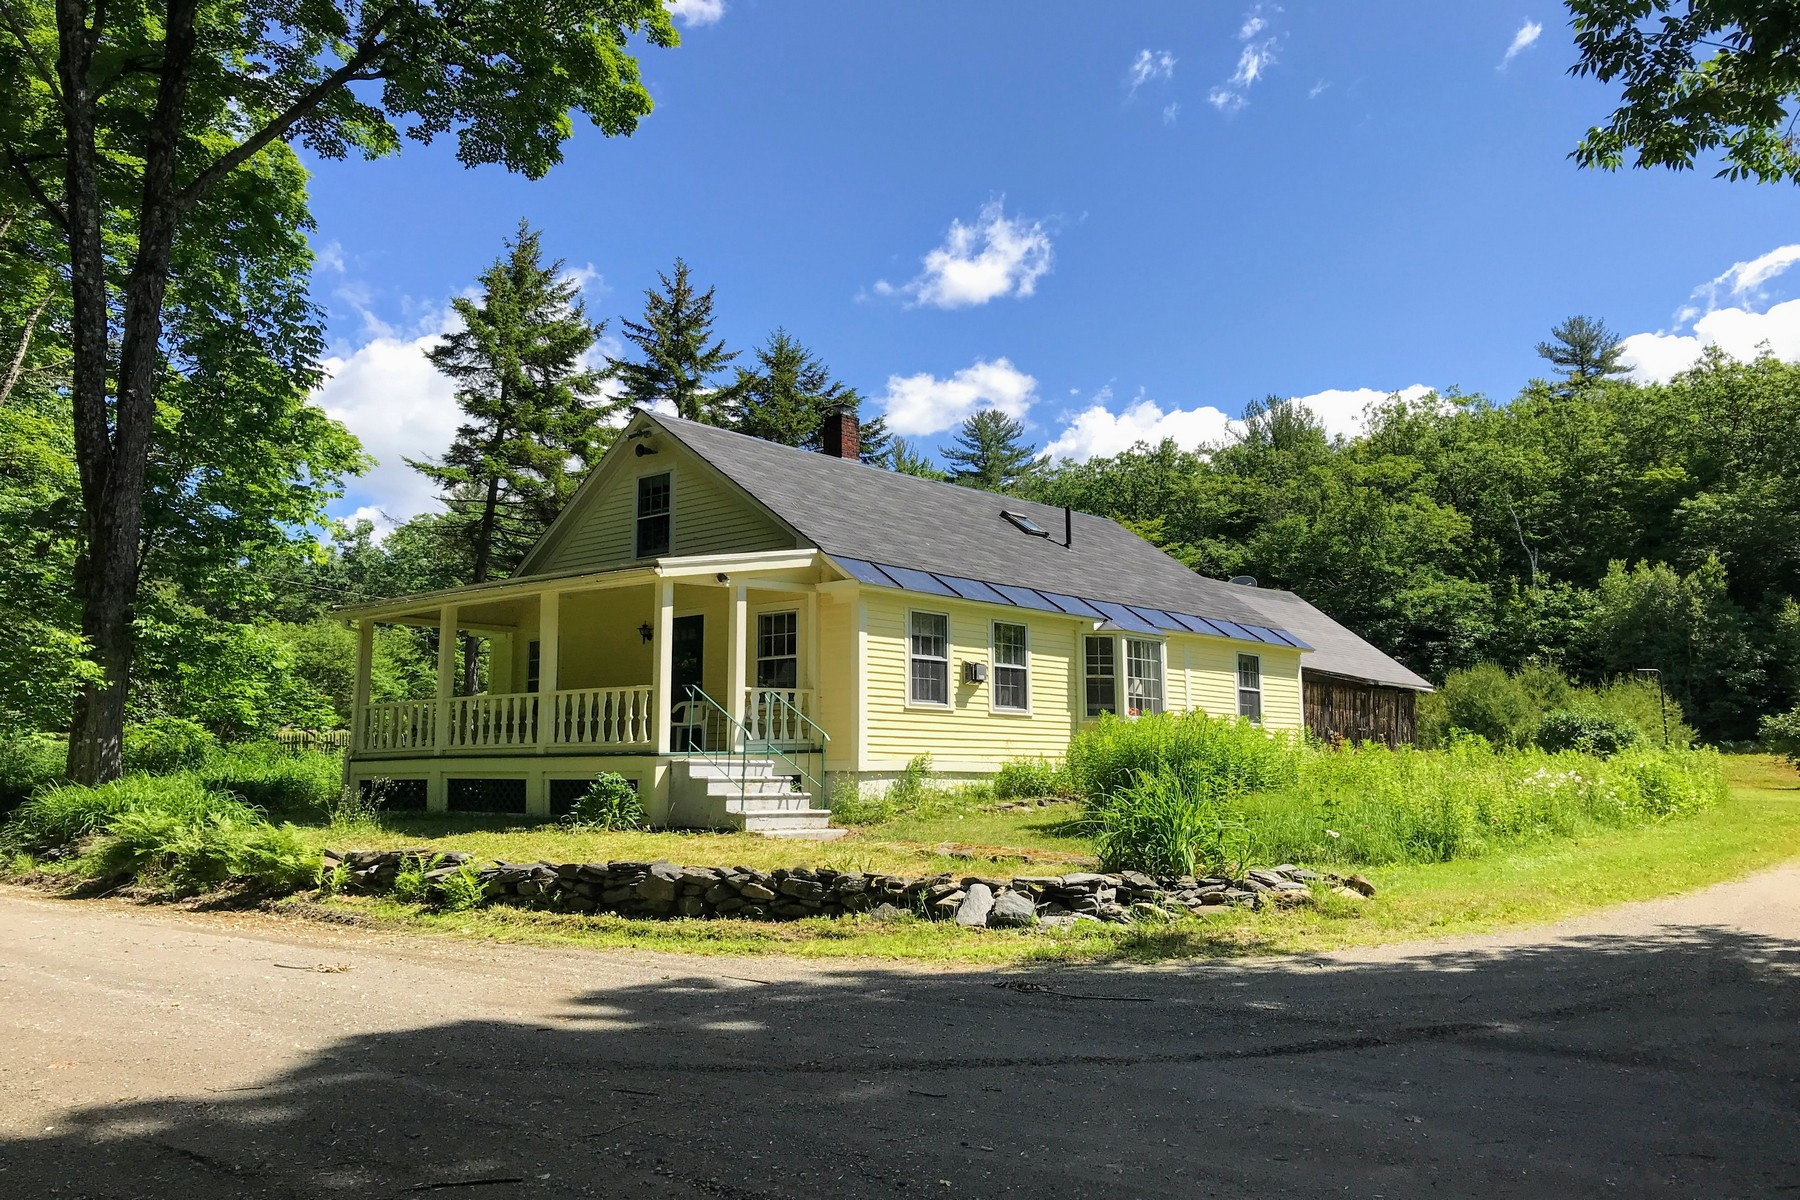 Single Family Home for Sale at Charming Newly Renovated Farmhouse 1909 Davidson Hill Rd Westminster, Vermont 05158 United States